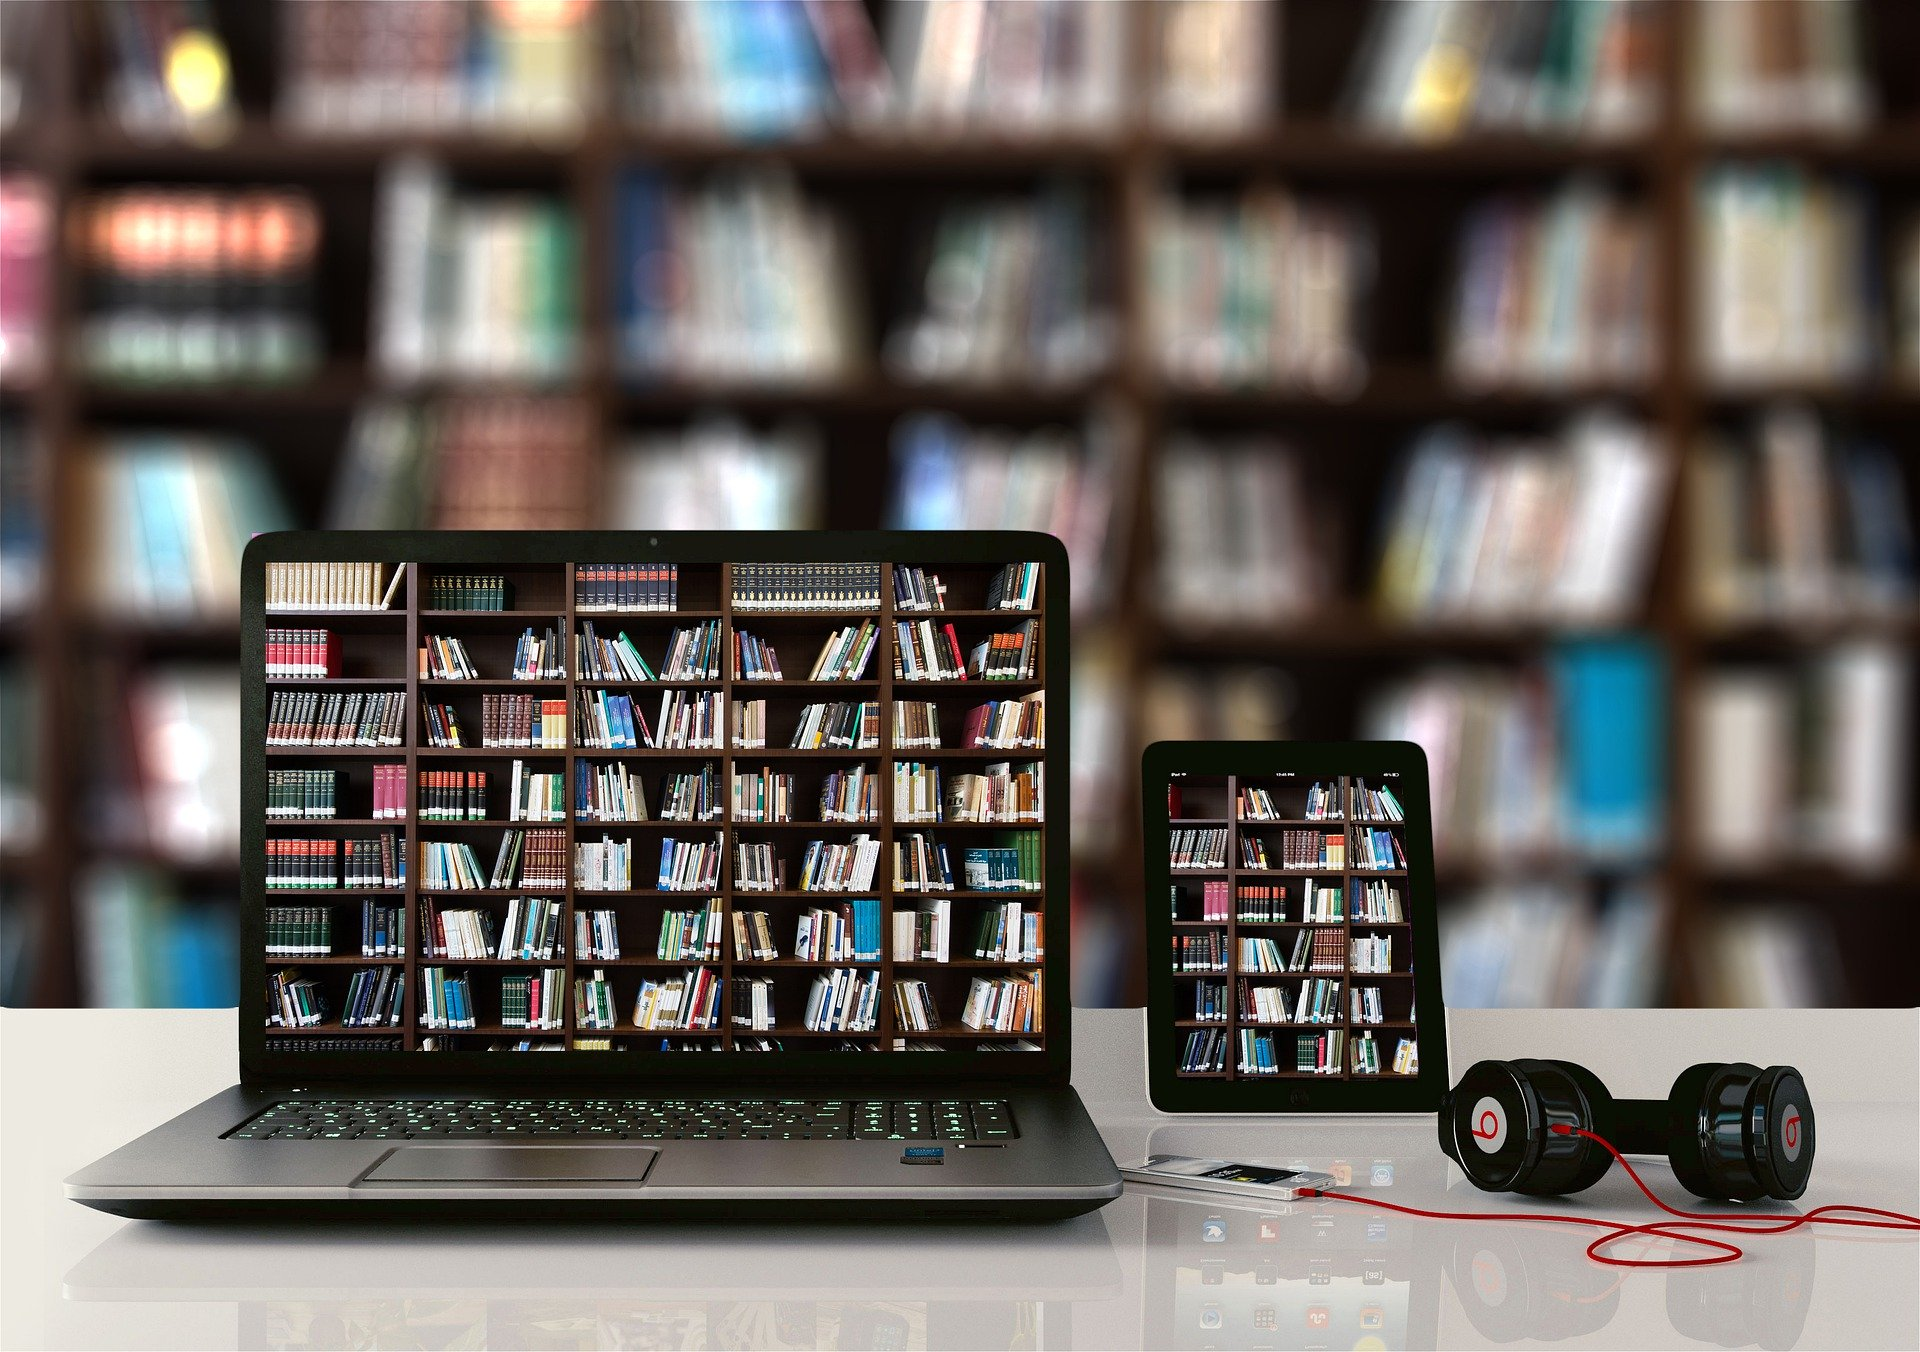 Laptop and tablet with bookshelves on the screens